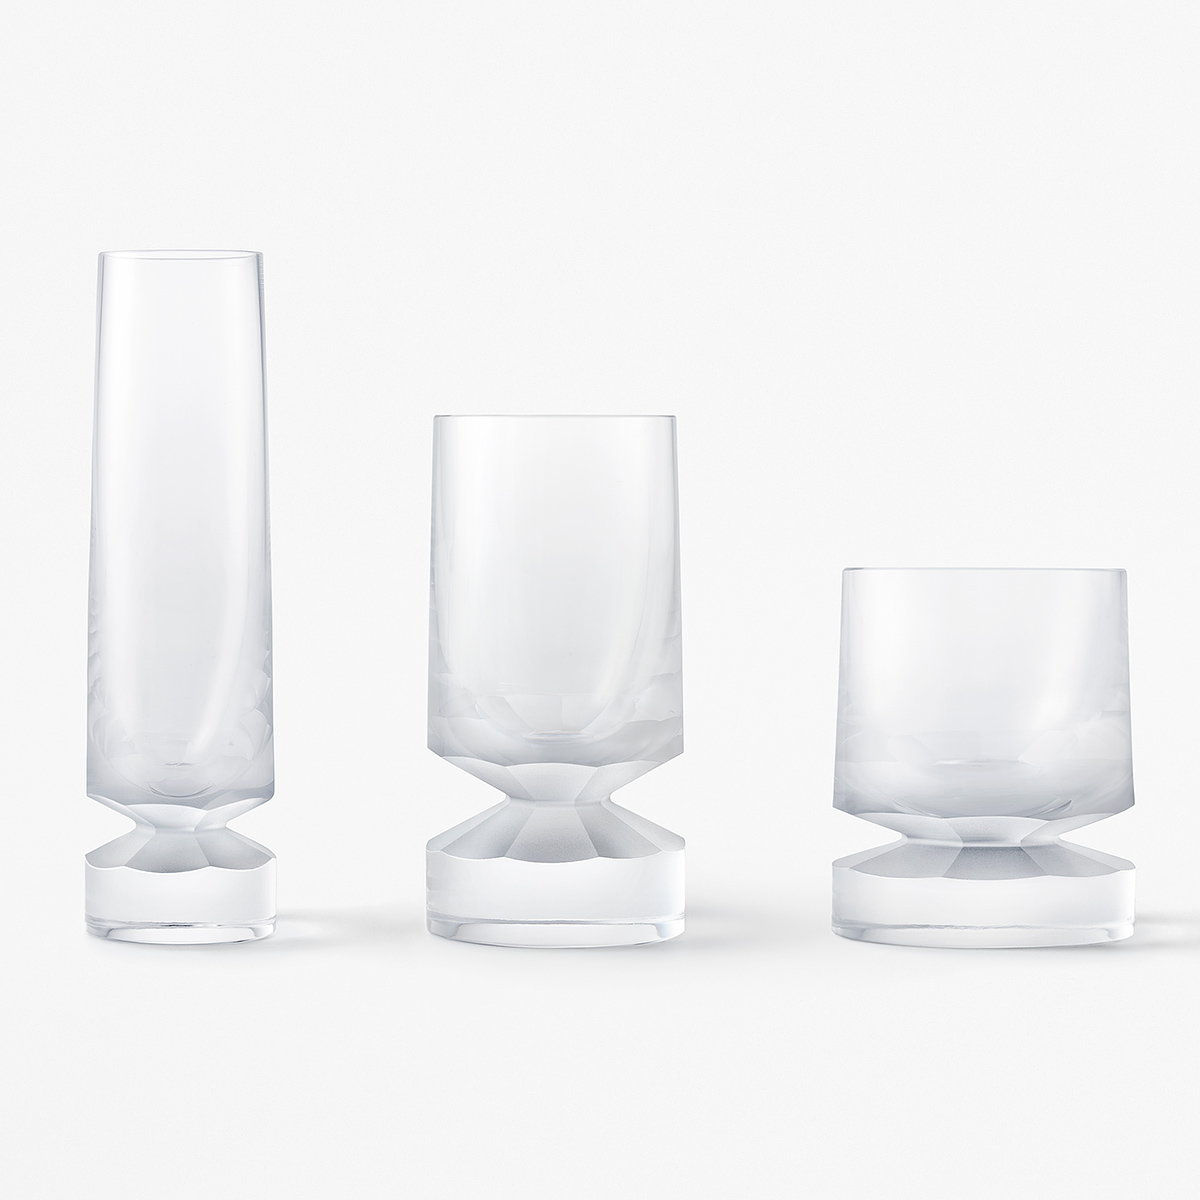 Nendo Designs Beaver Glassware Collection for Lasvit